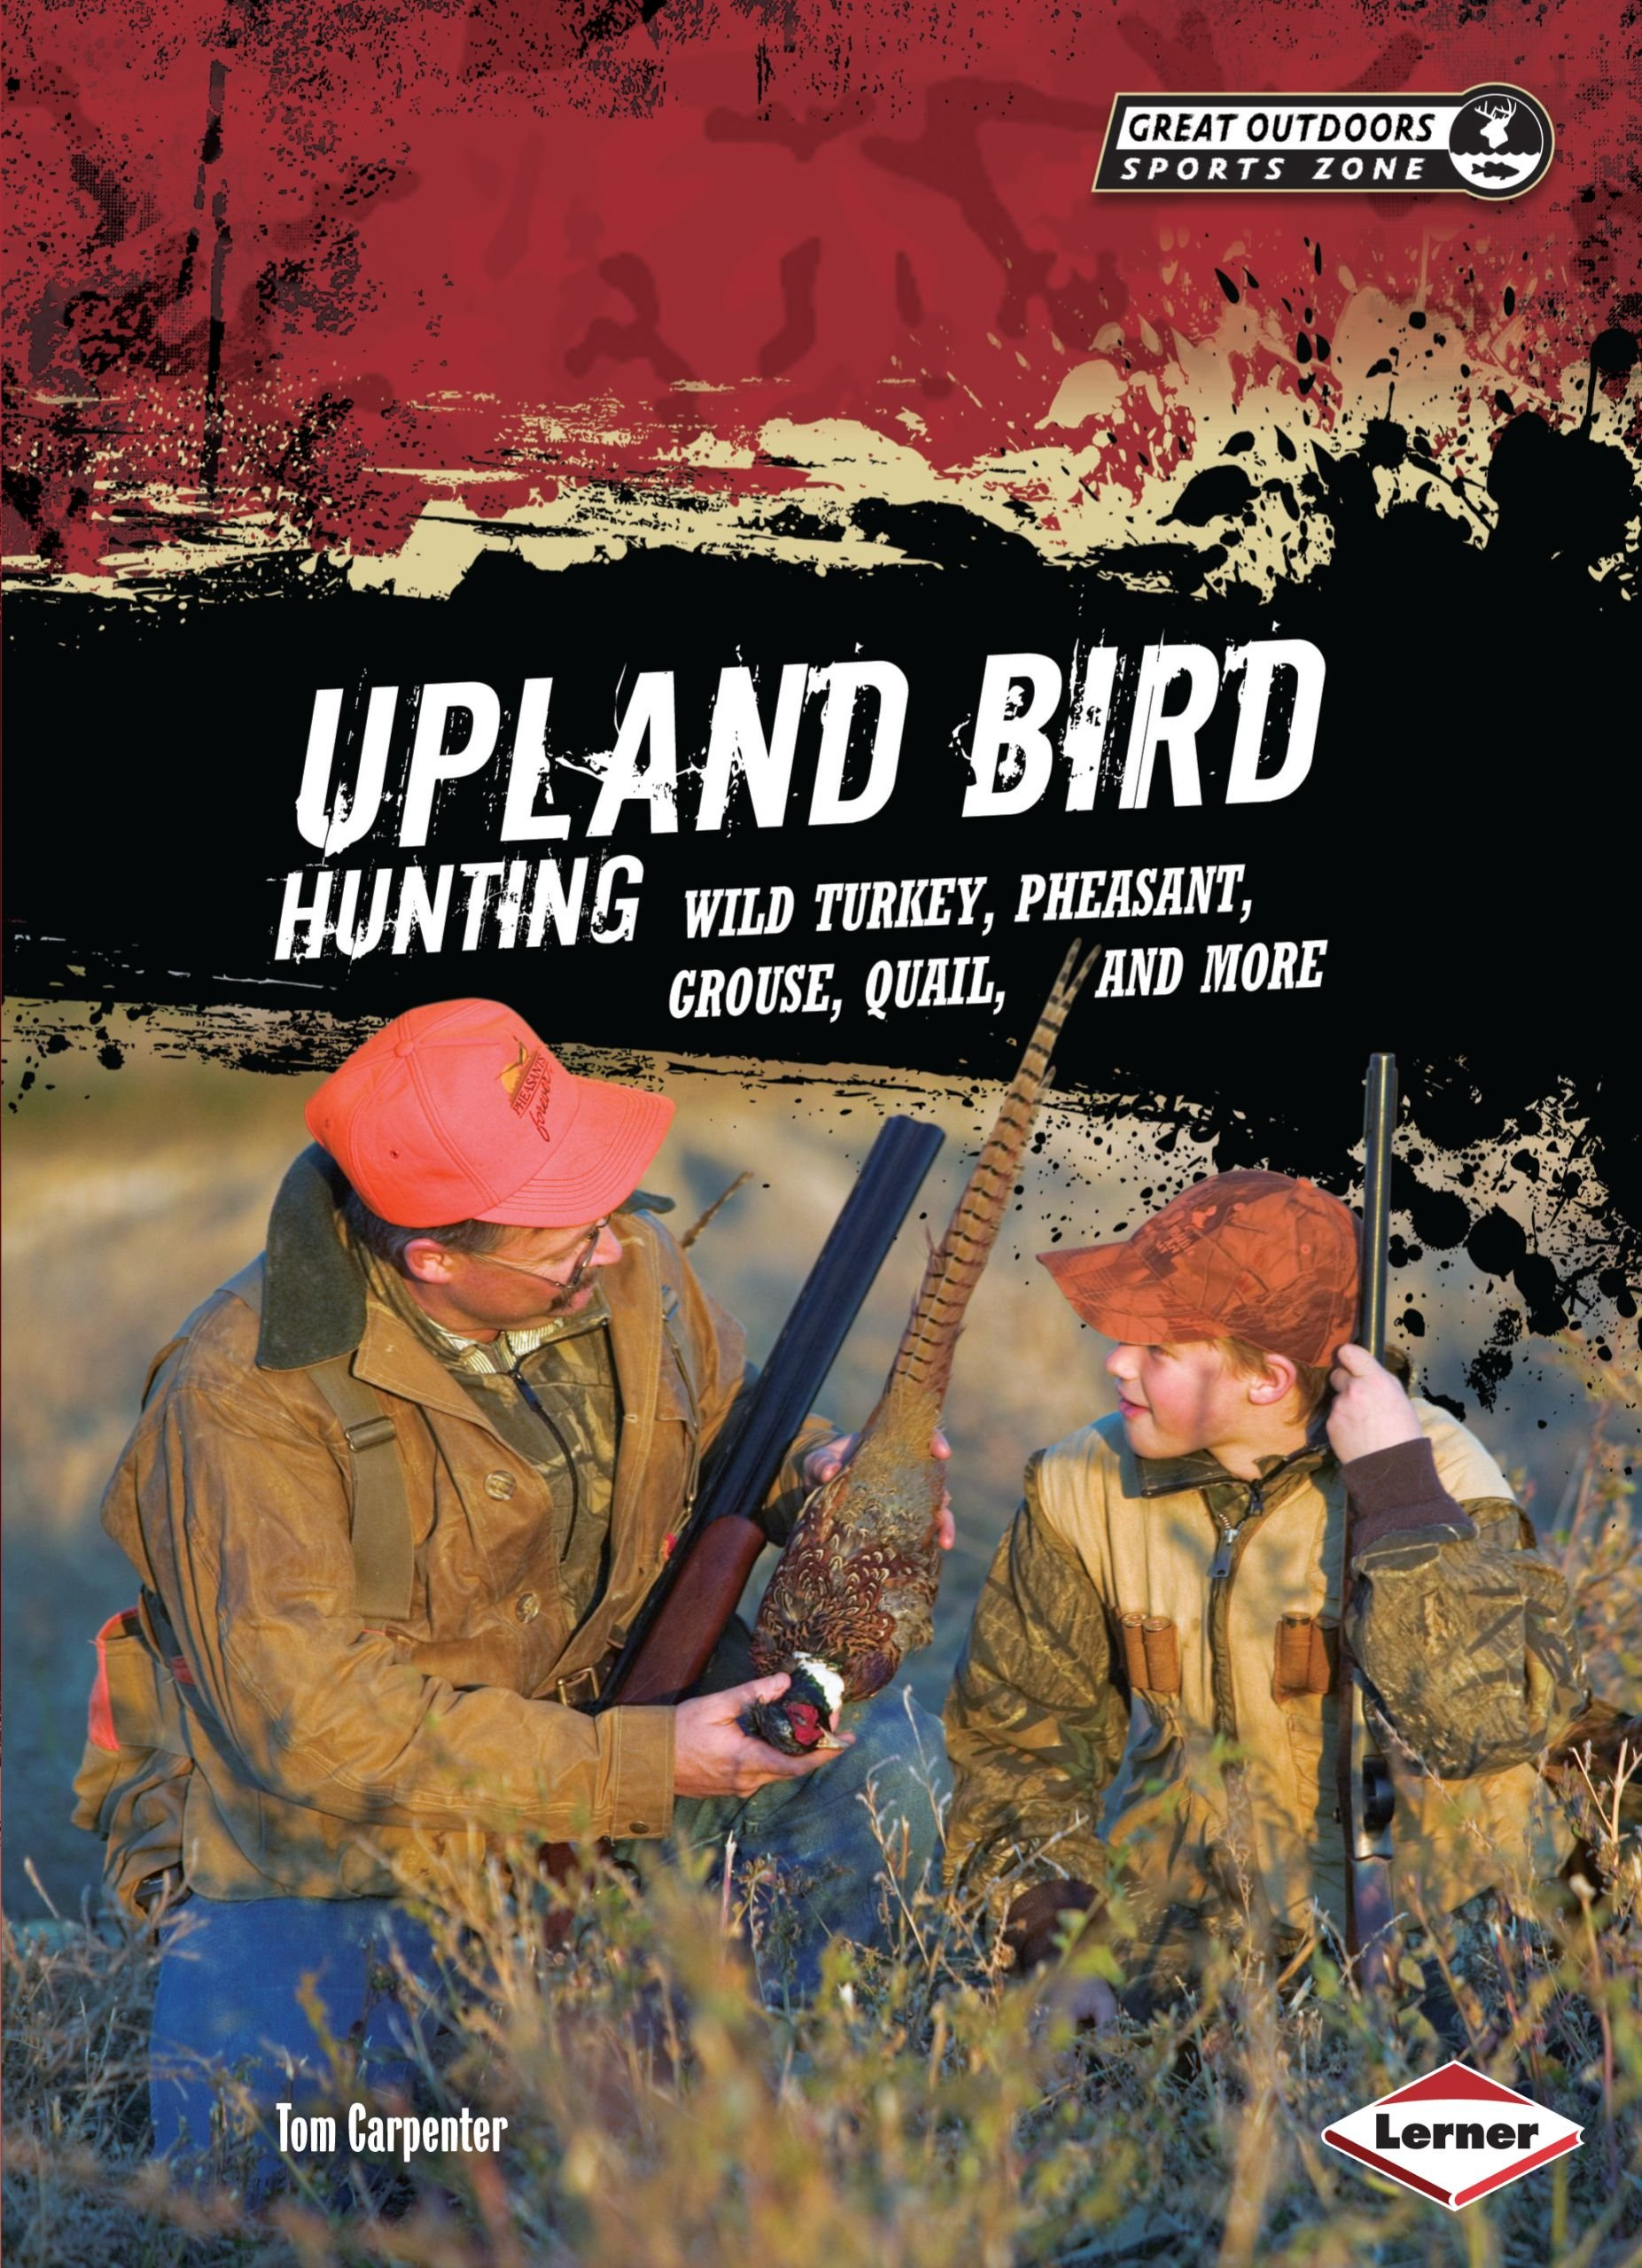 Download Upland Bird Hunting: Wild Turkey, Pheasant, Grouse, Quail, and More (Great Outdoors Sports Zone) PDF